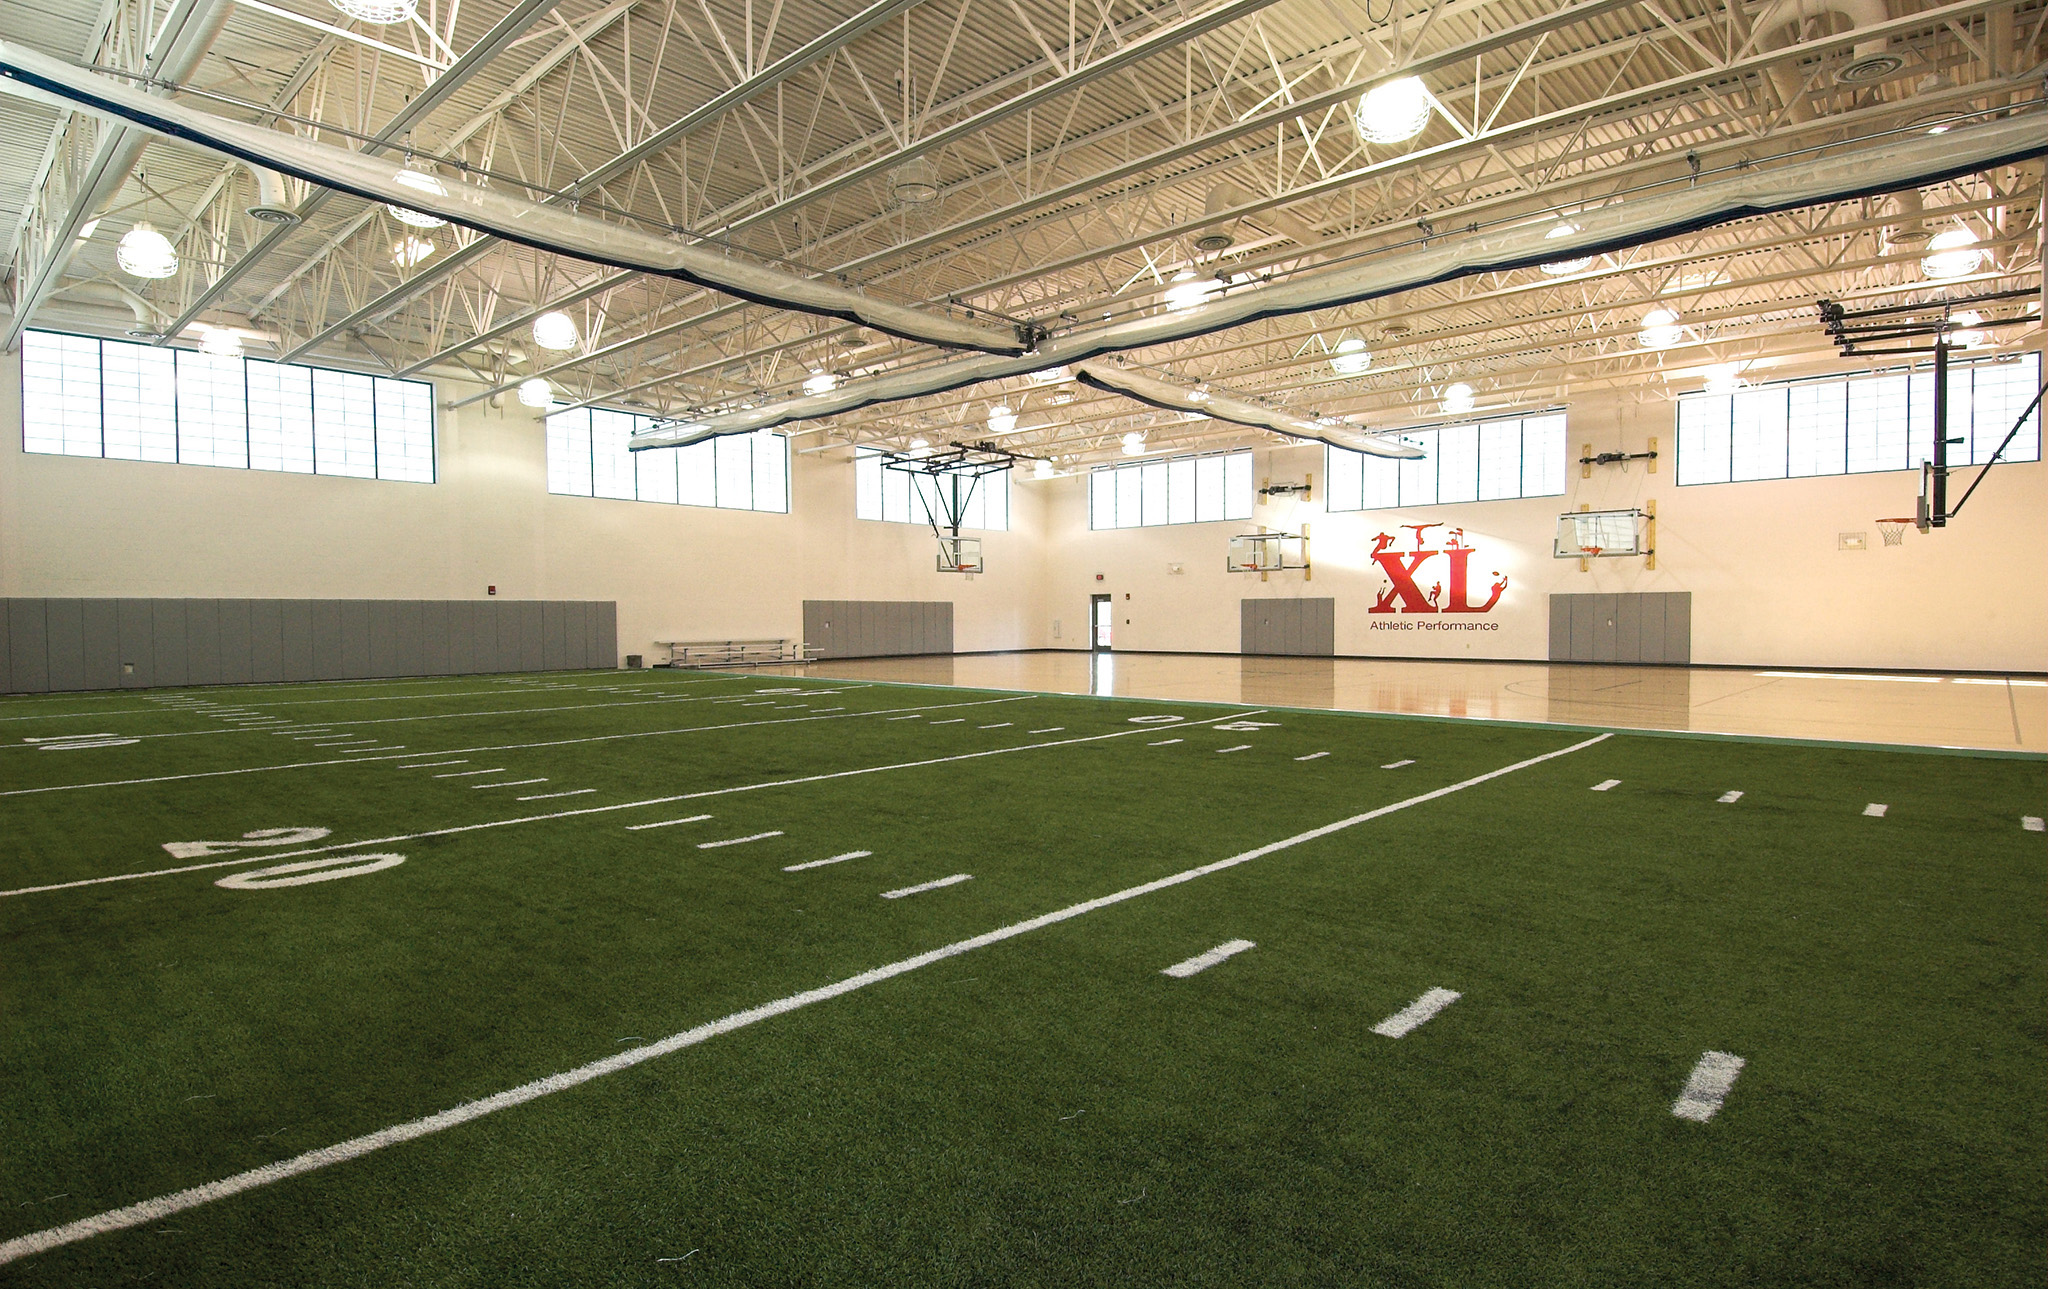 West-Side-Clinic-and-Athletic-Performance-Center